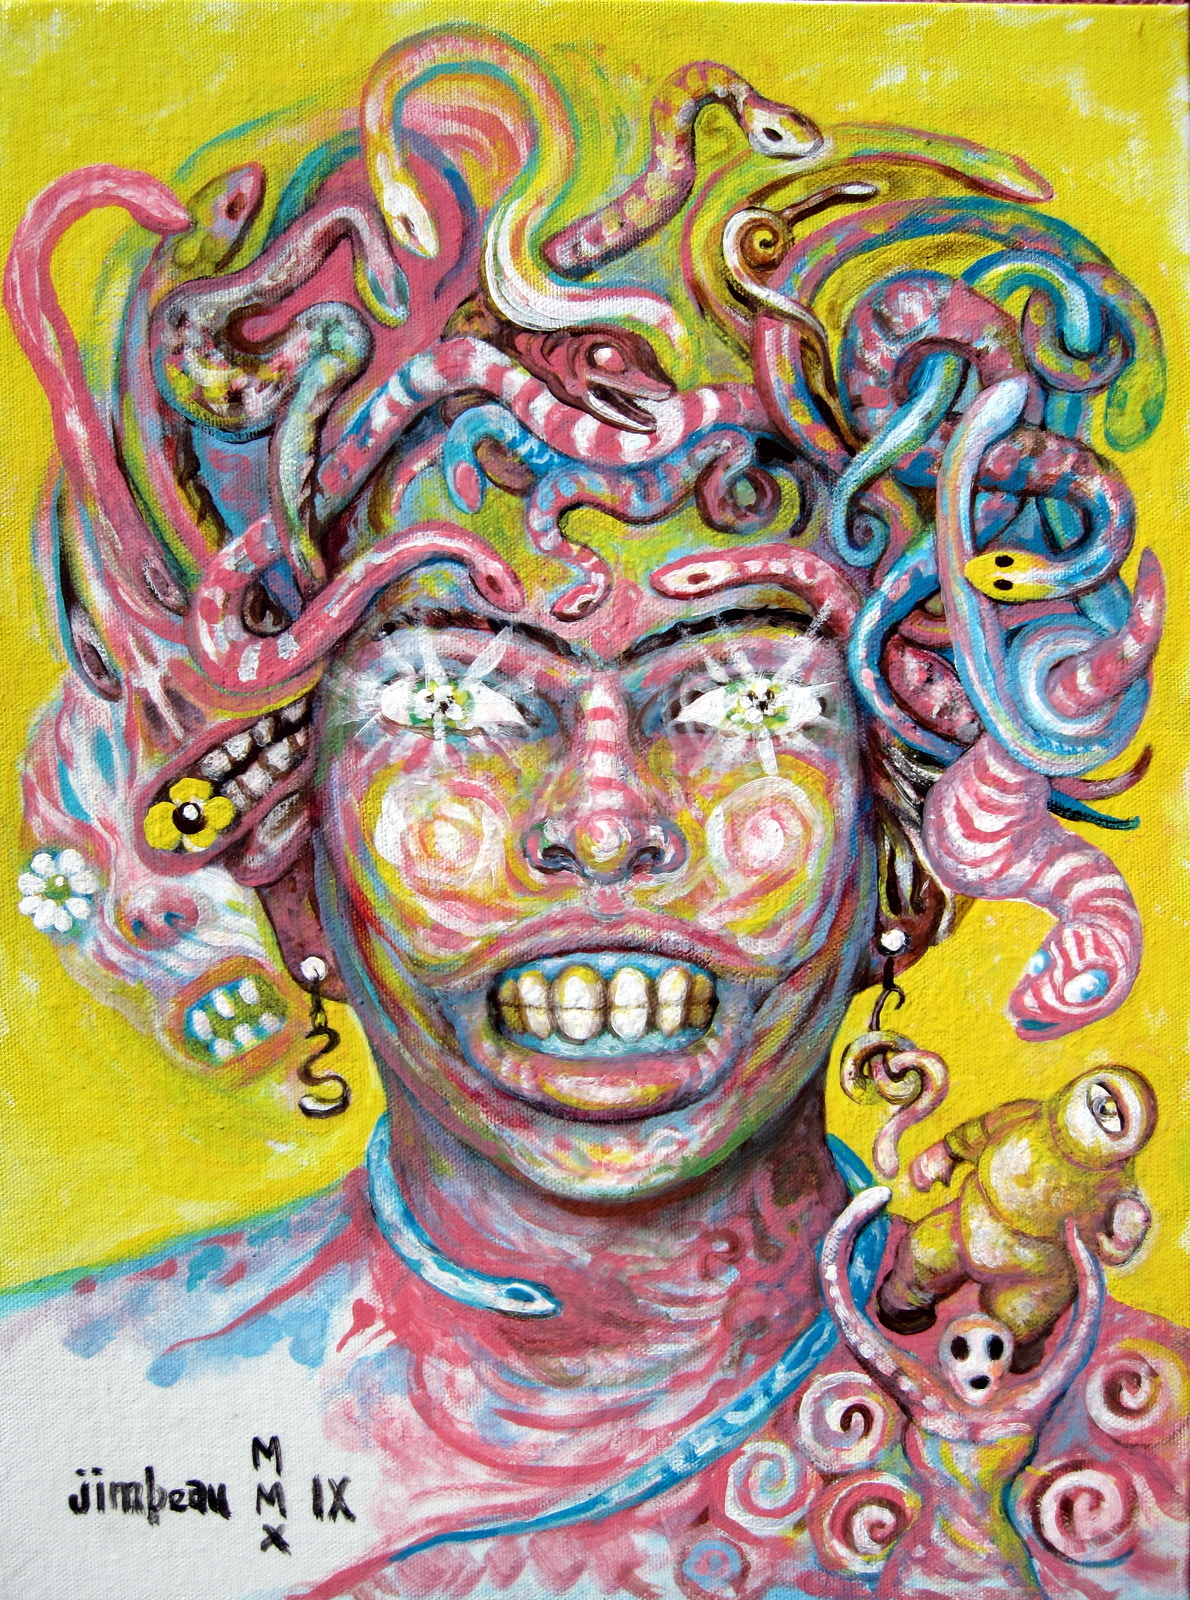 You never know just when you may come face to face with a candy-coated Medusa.